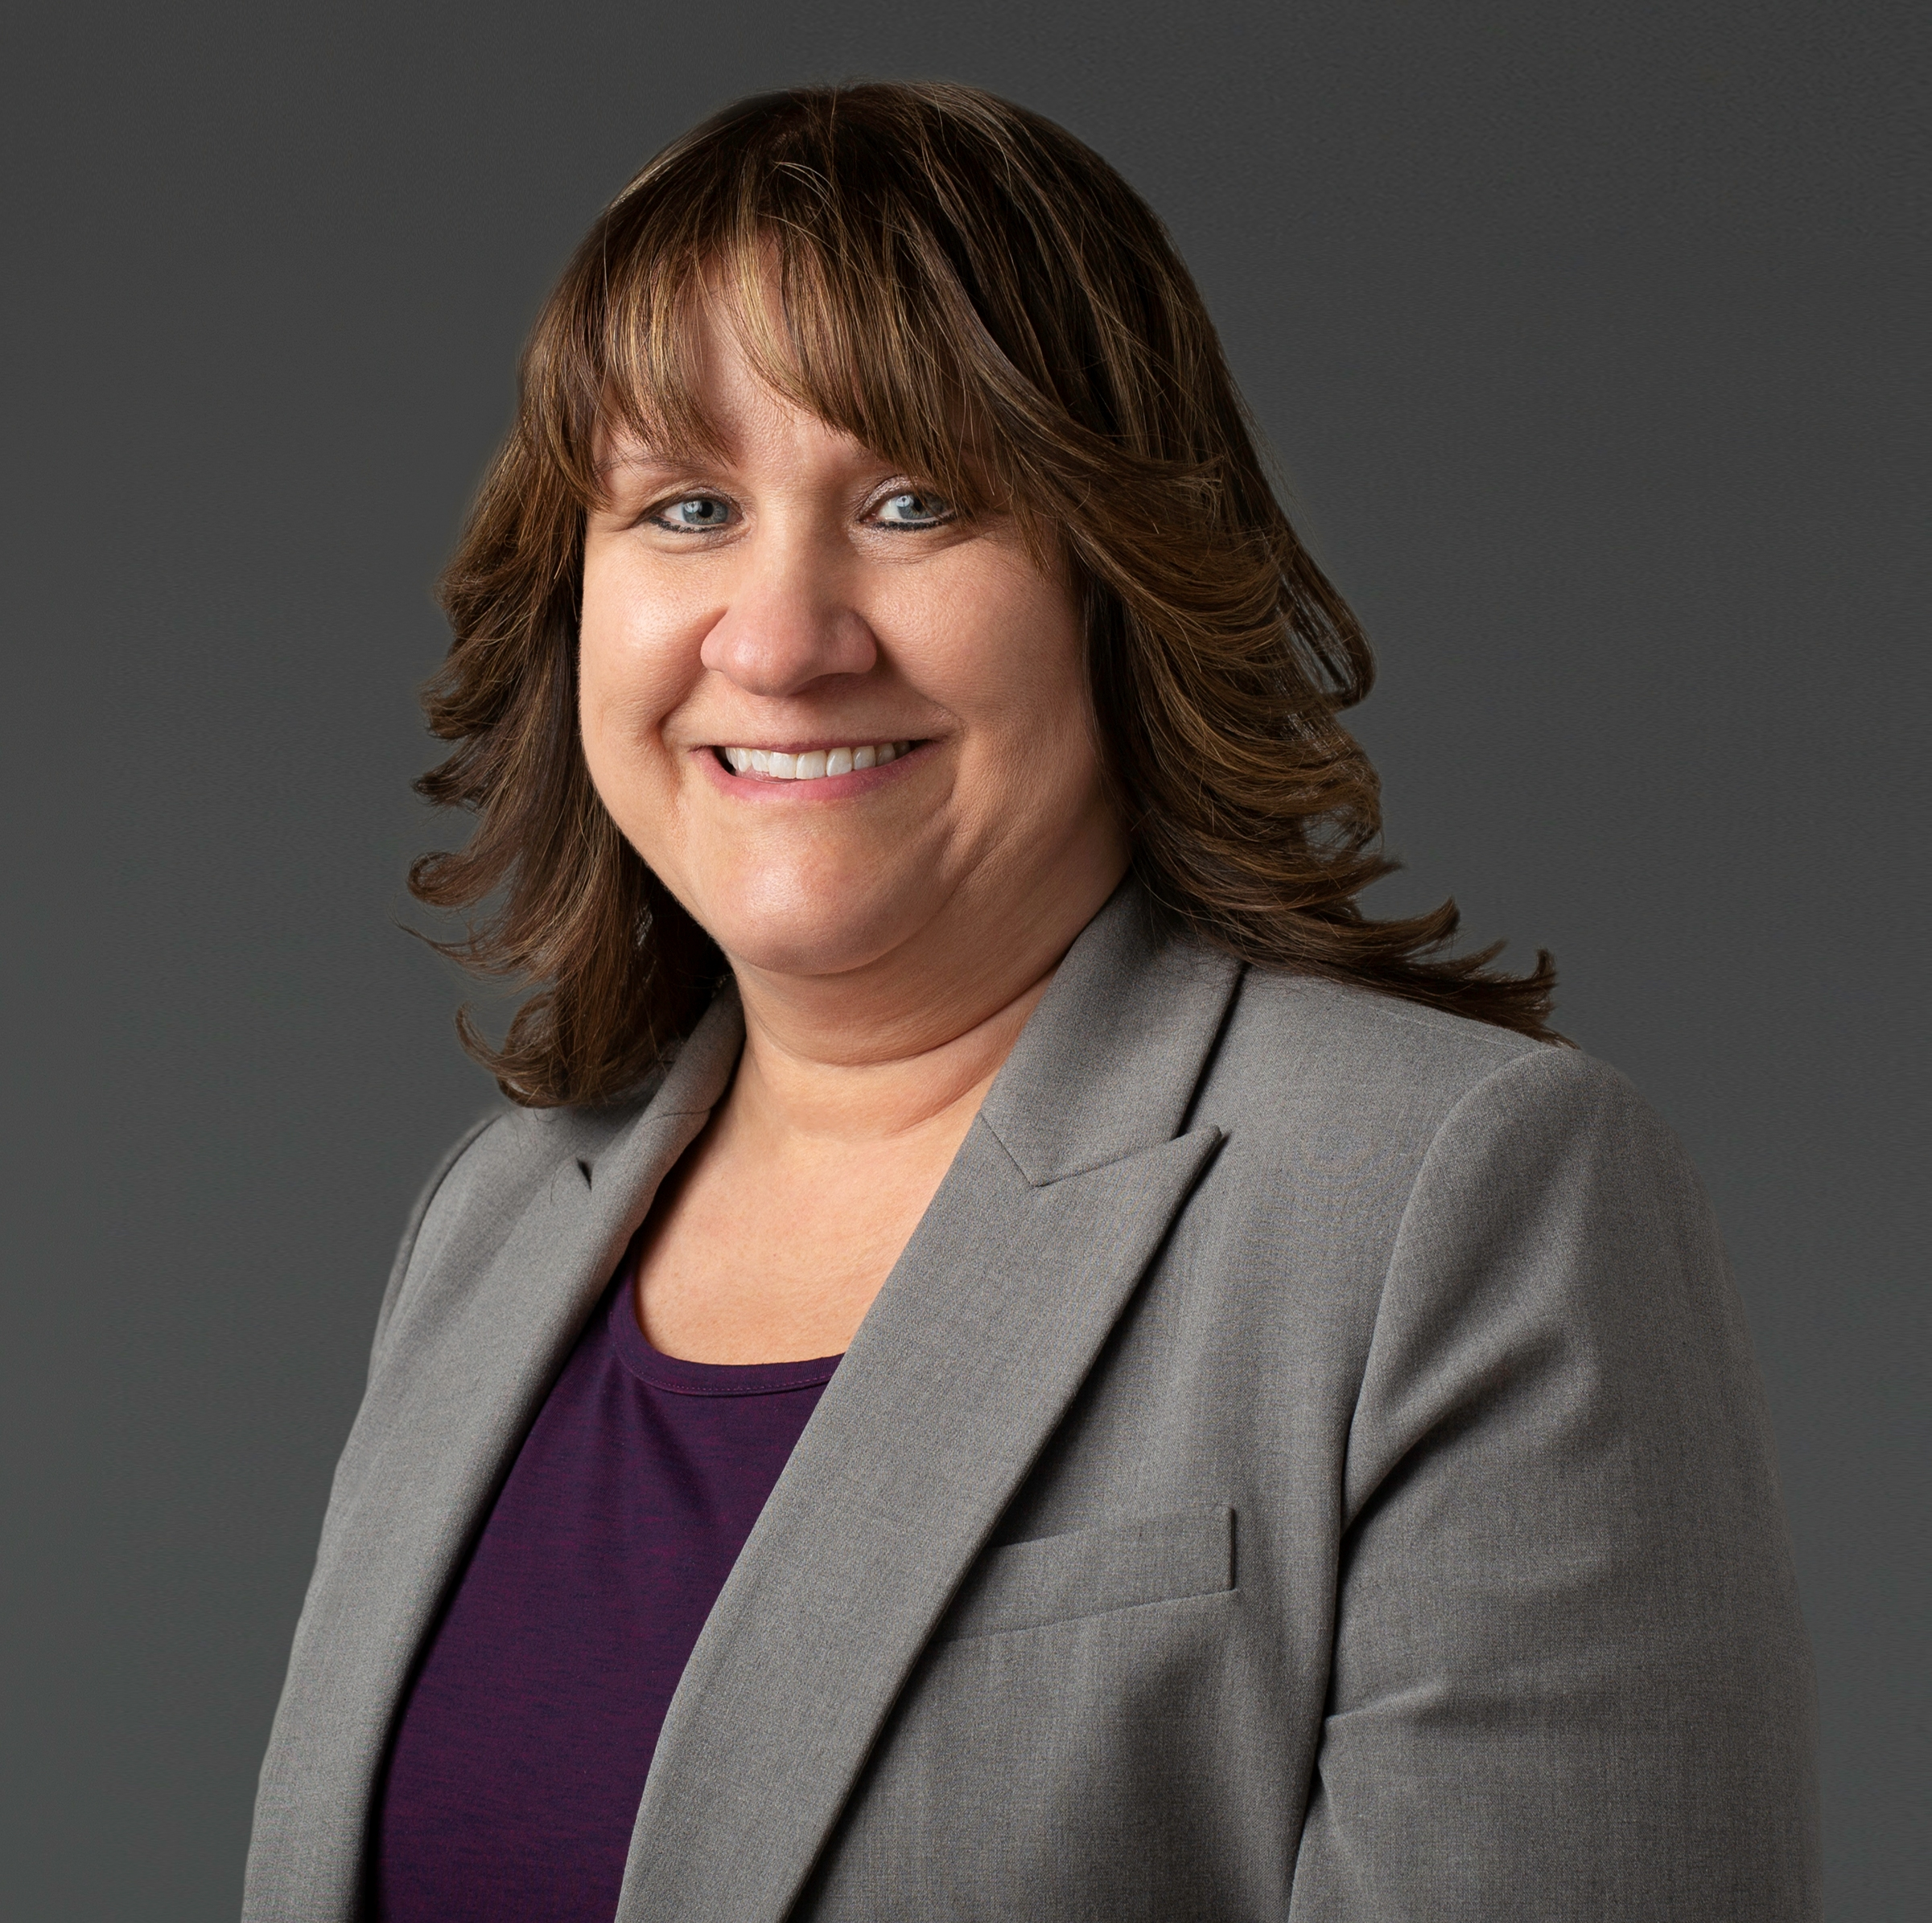 Penny G. Smart, Manager of Maine Fiduciary Services